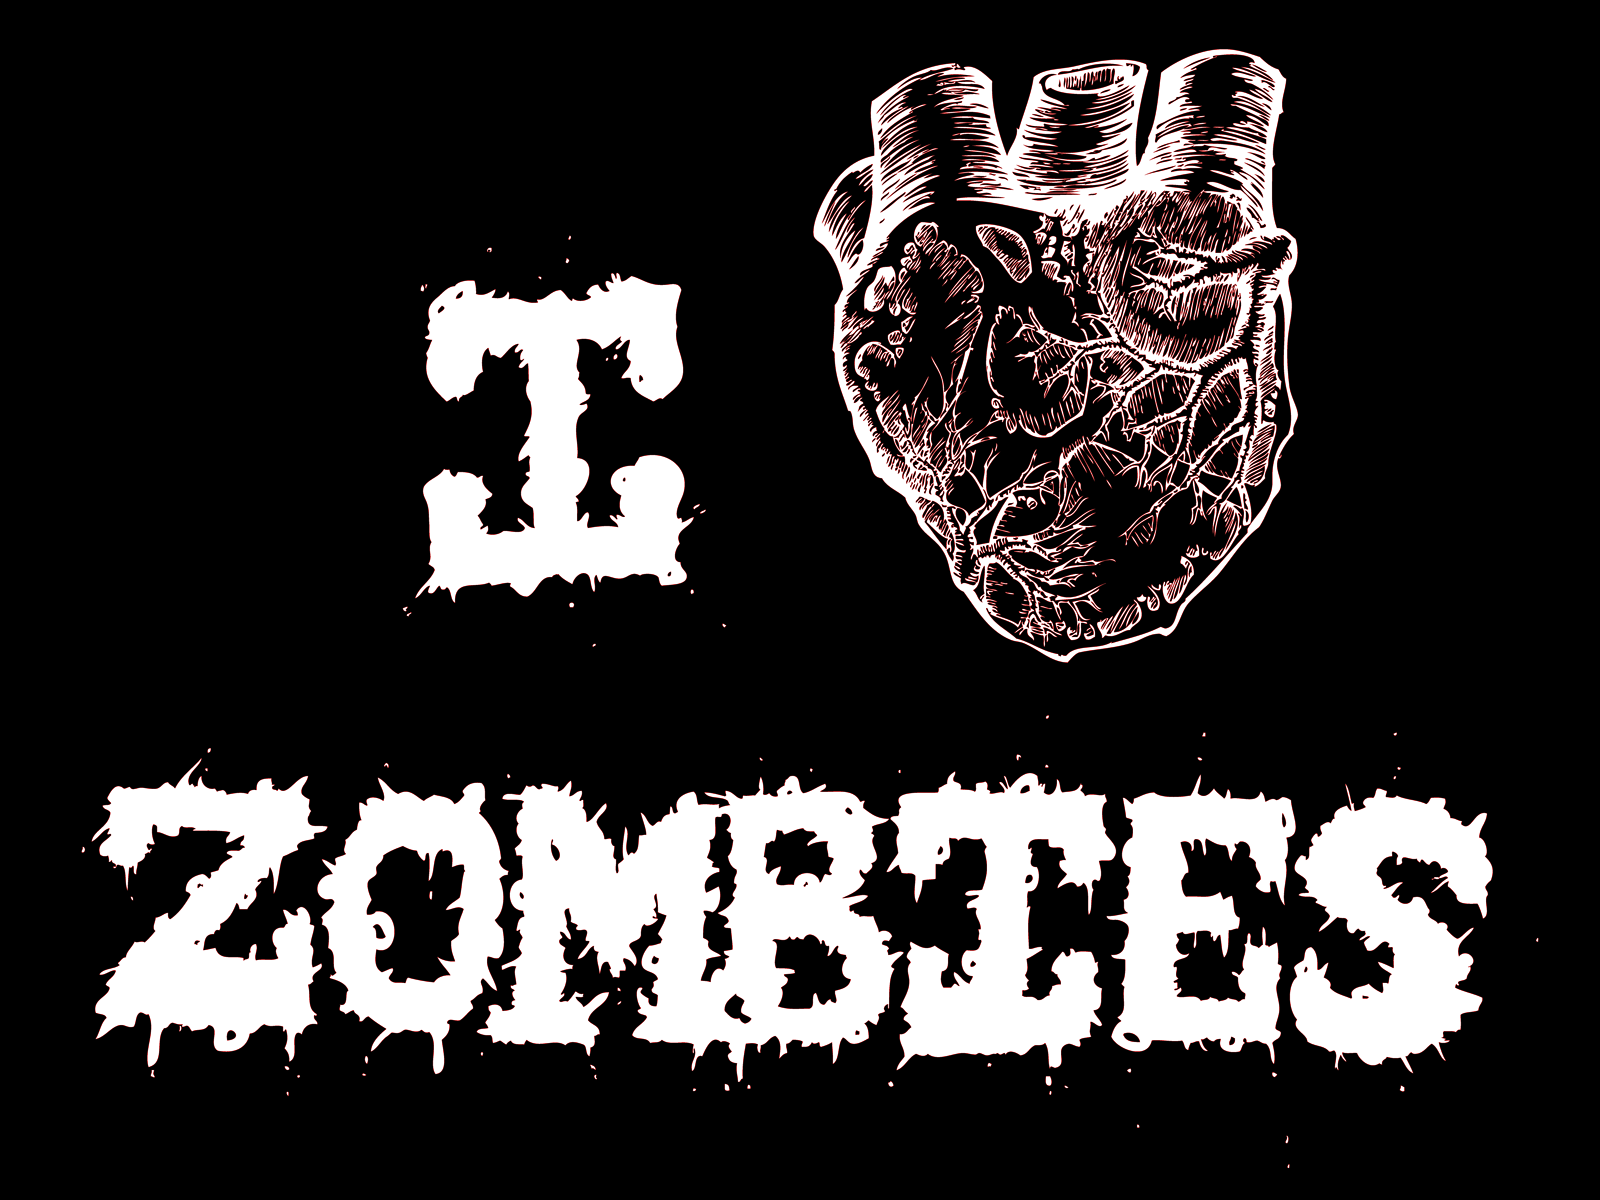 zombie wallpapers best wallpapers 1920a—1080 zombies wallpapers 62 wallpapers adorable wallpapers desktop pinterest zombie wallpaper and wallpaper